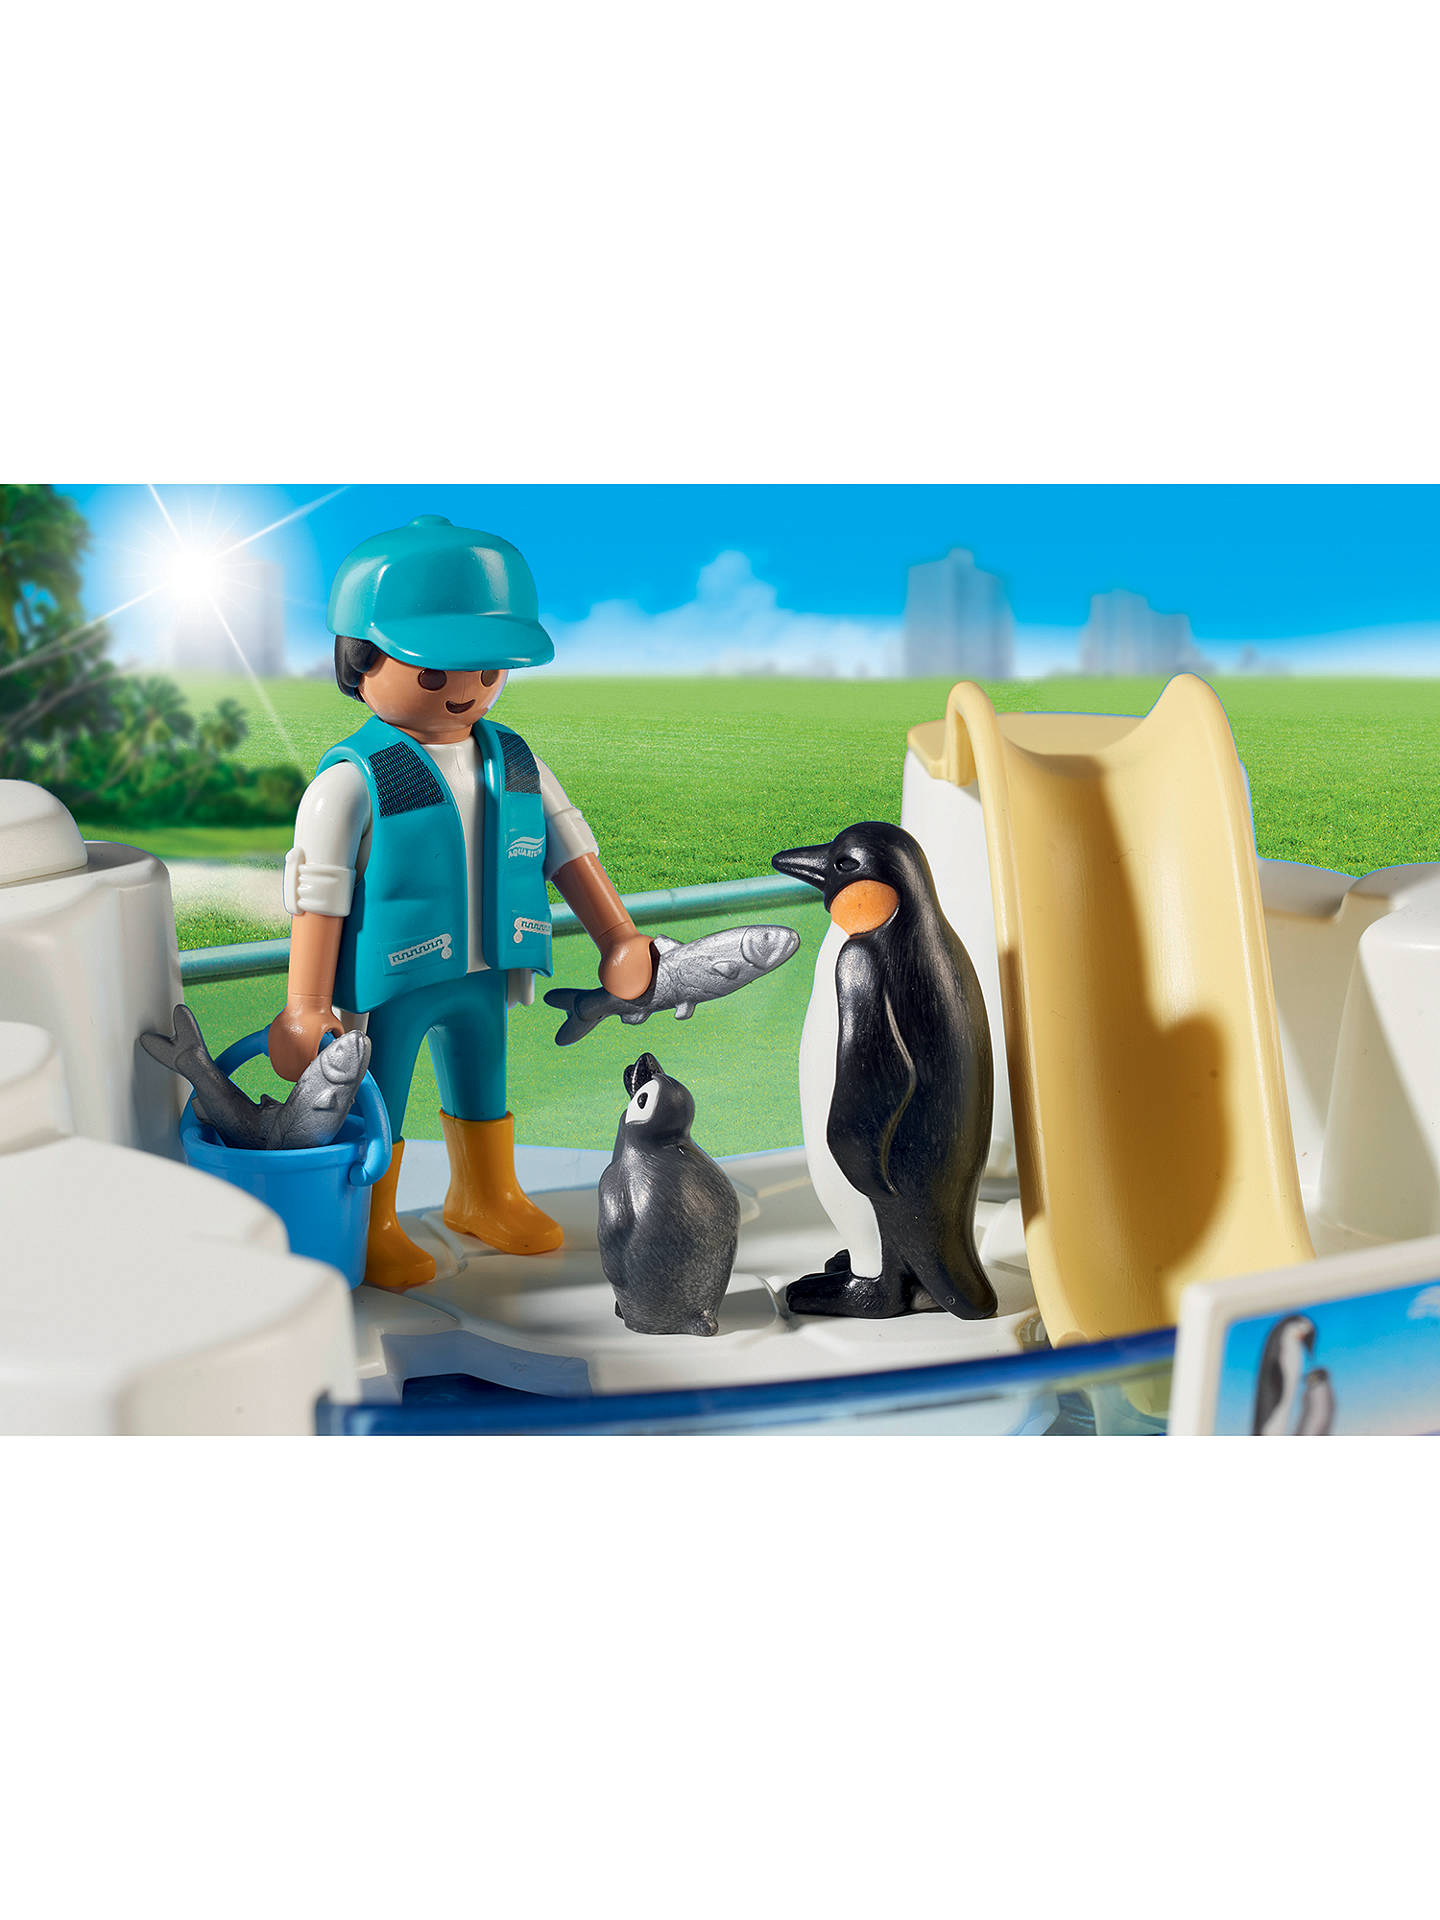 Buy Playmobil Aquarium 9062 Penguin Enclosure Set Online at johnlewis.com